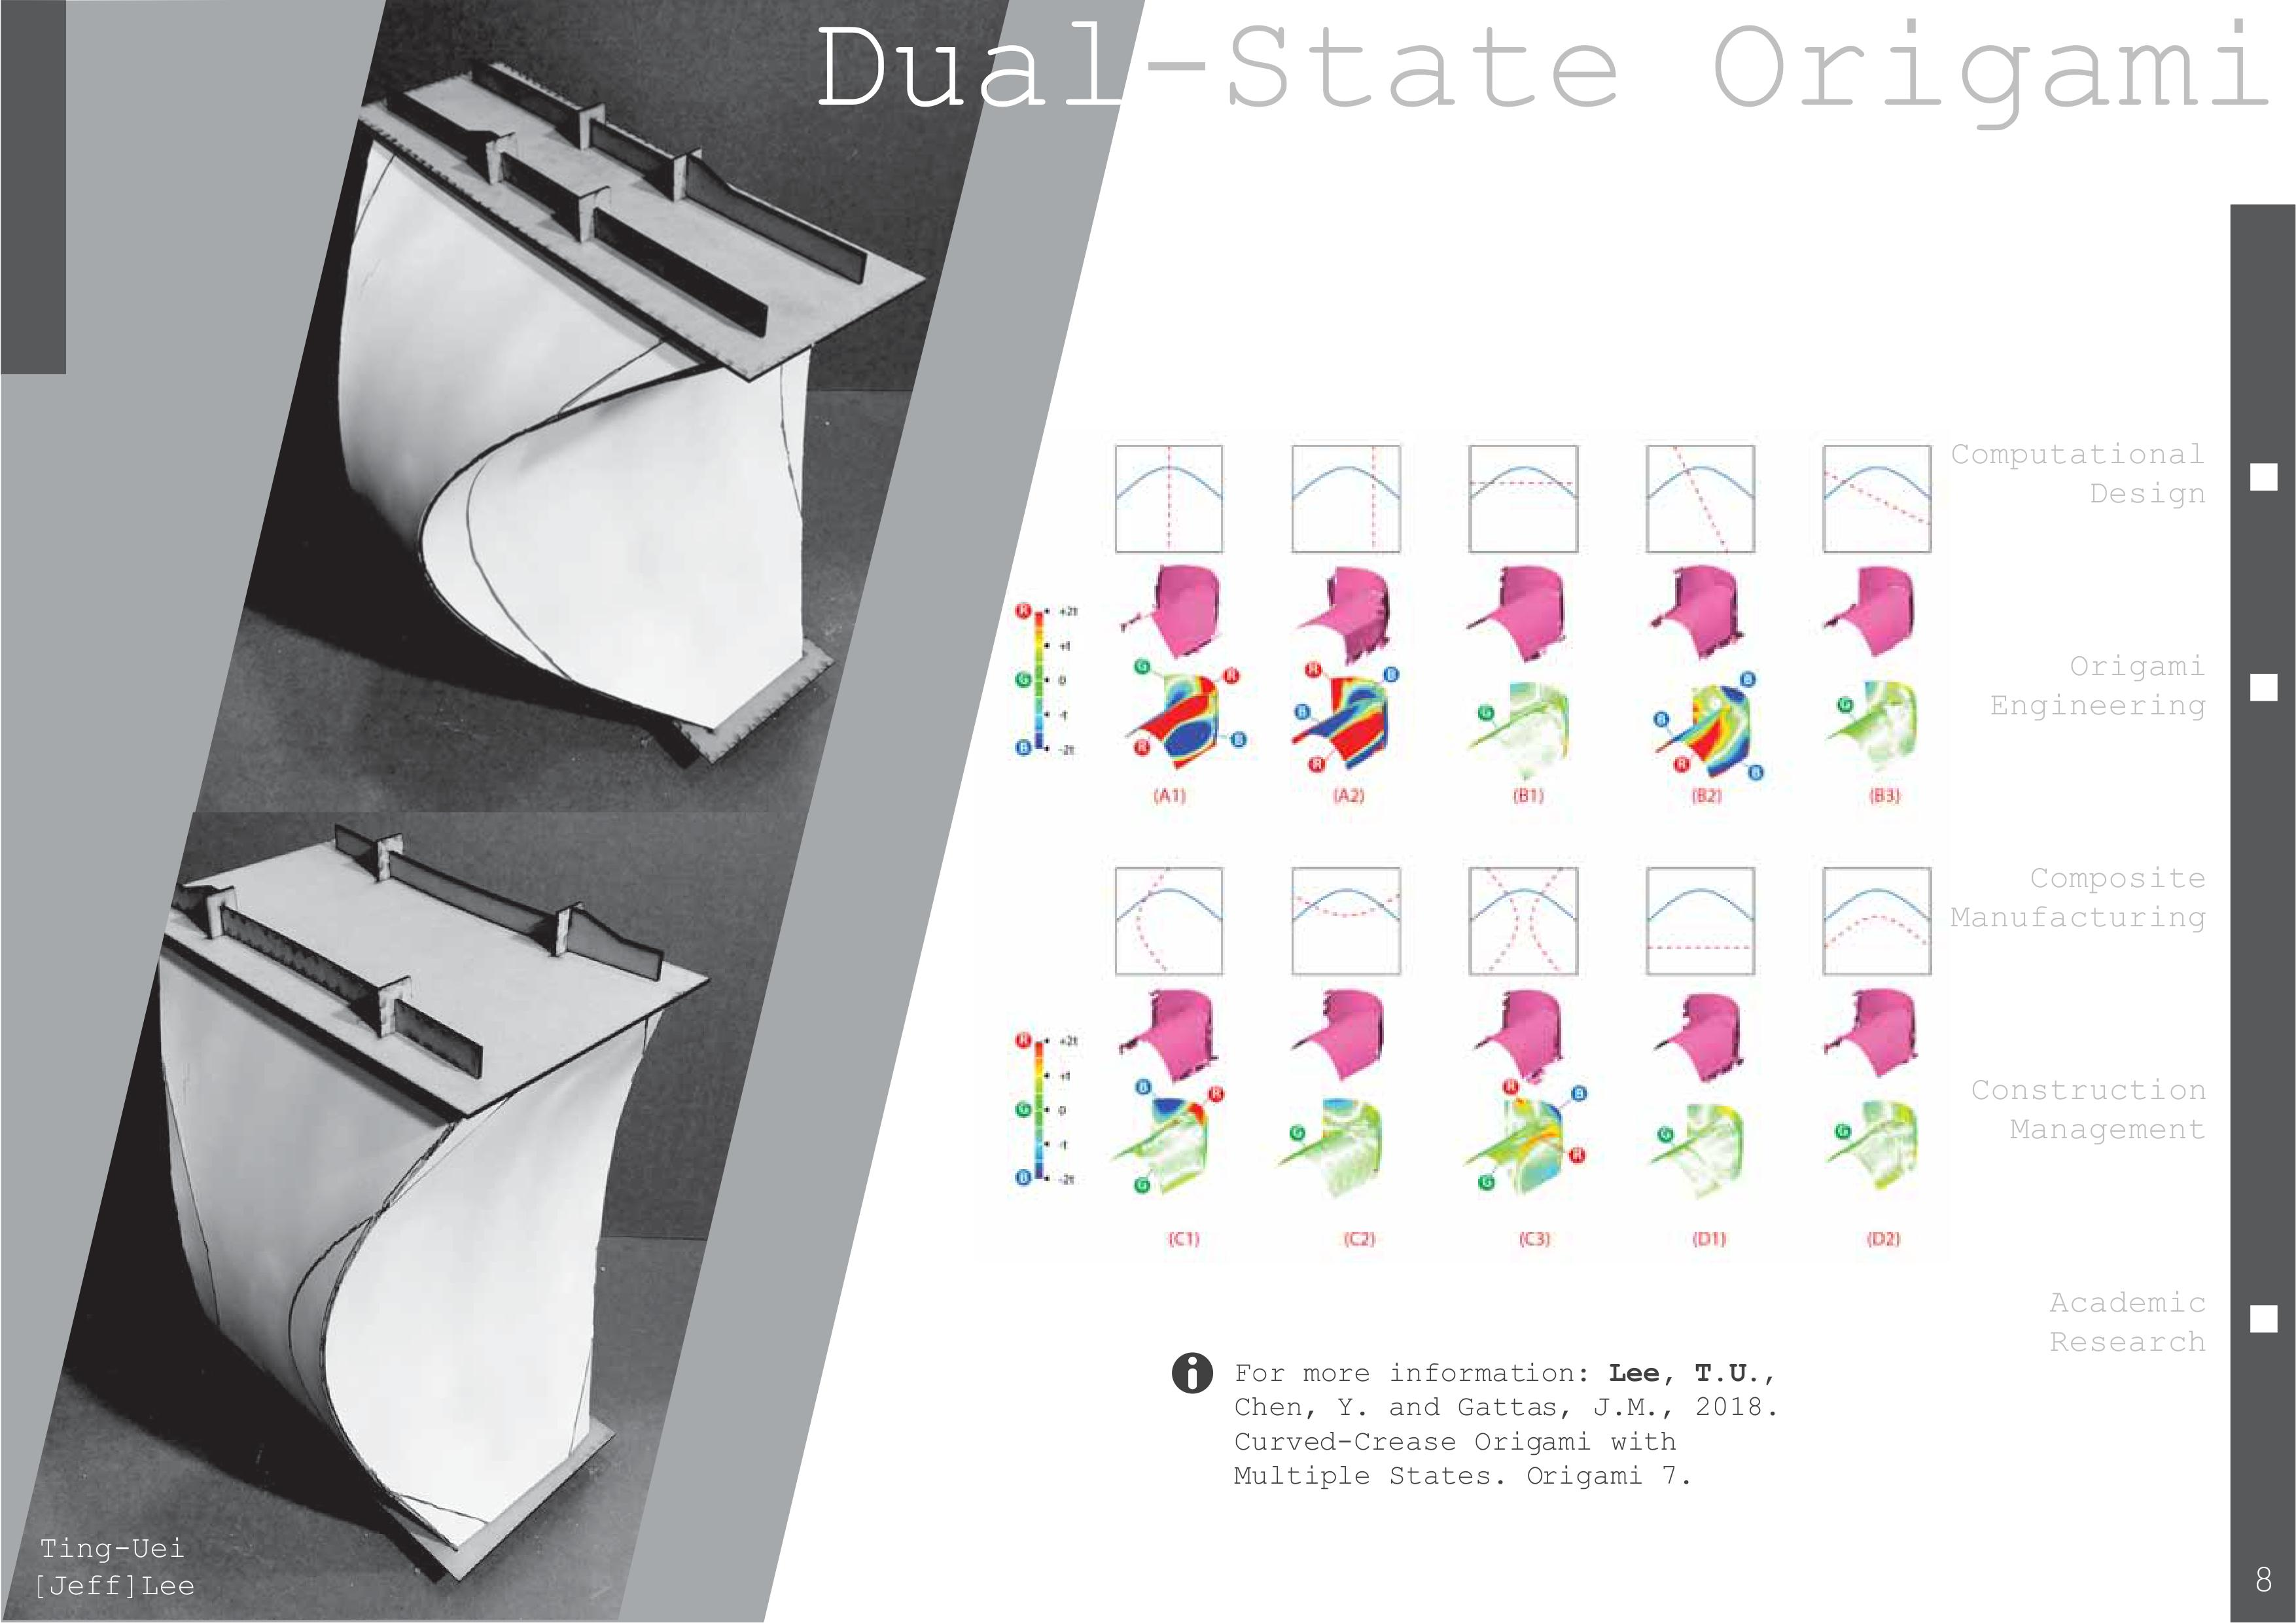 Dual-State Origami